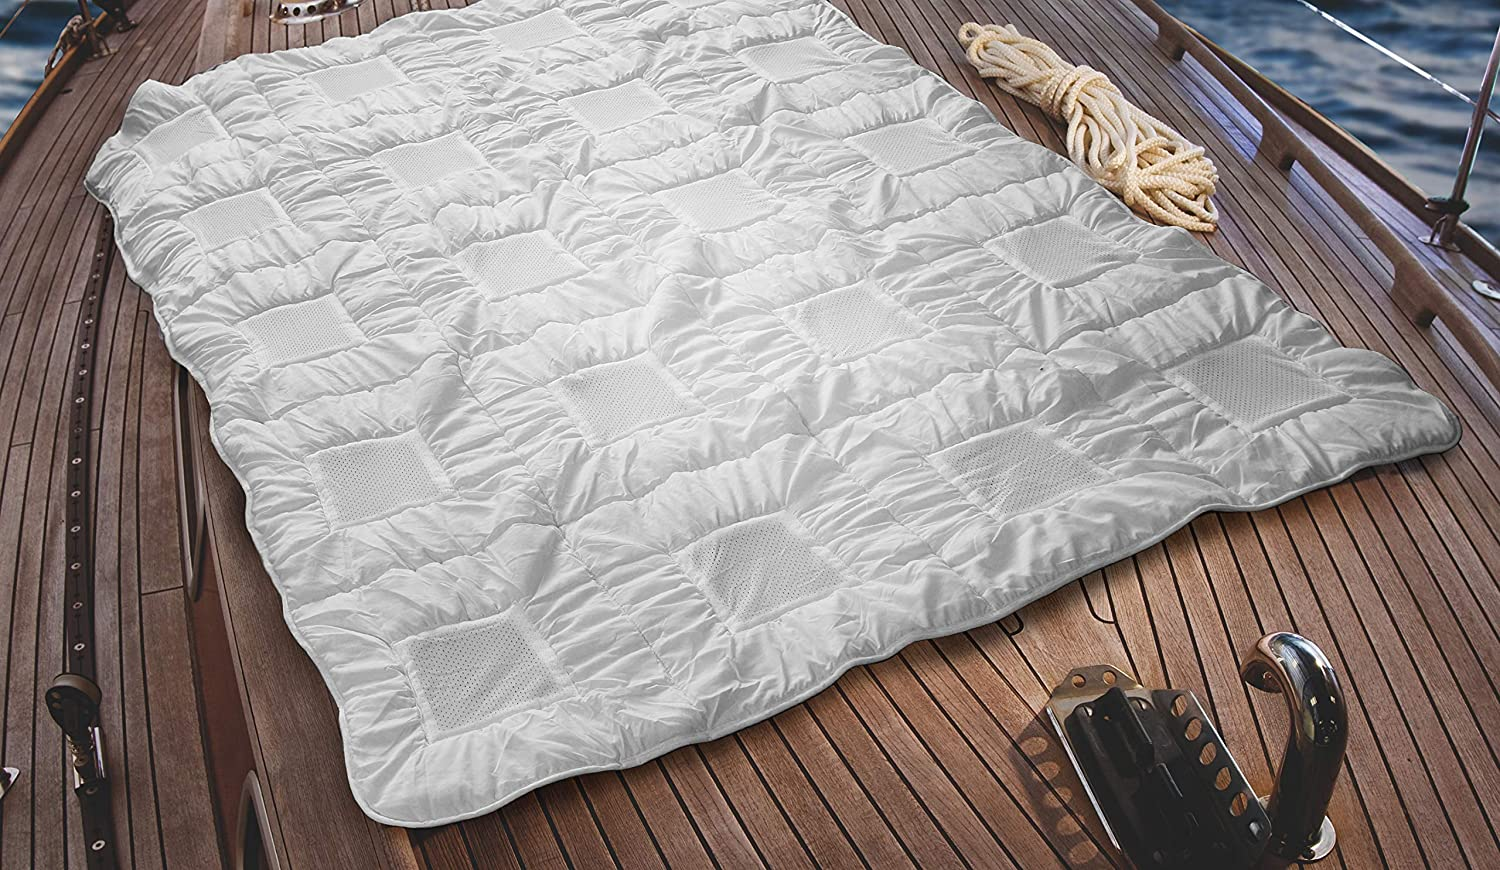 Climabalance Hypoallergenic Lightweight Down Alternative Comforter | Patented Breathable Design | Improves Deep Sleep Phases up to 50% | Sensofill Virgin Polyester | California King 110x96